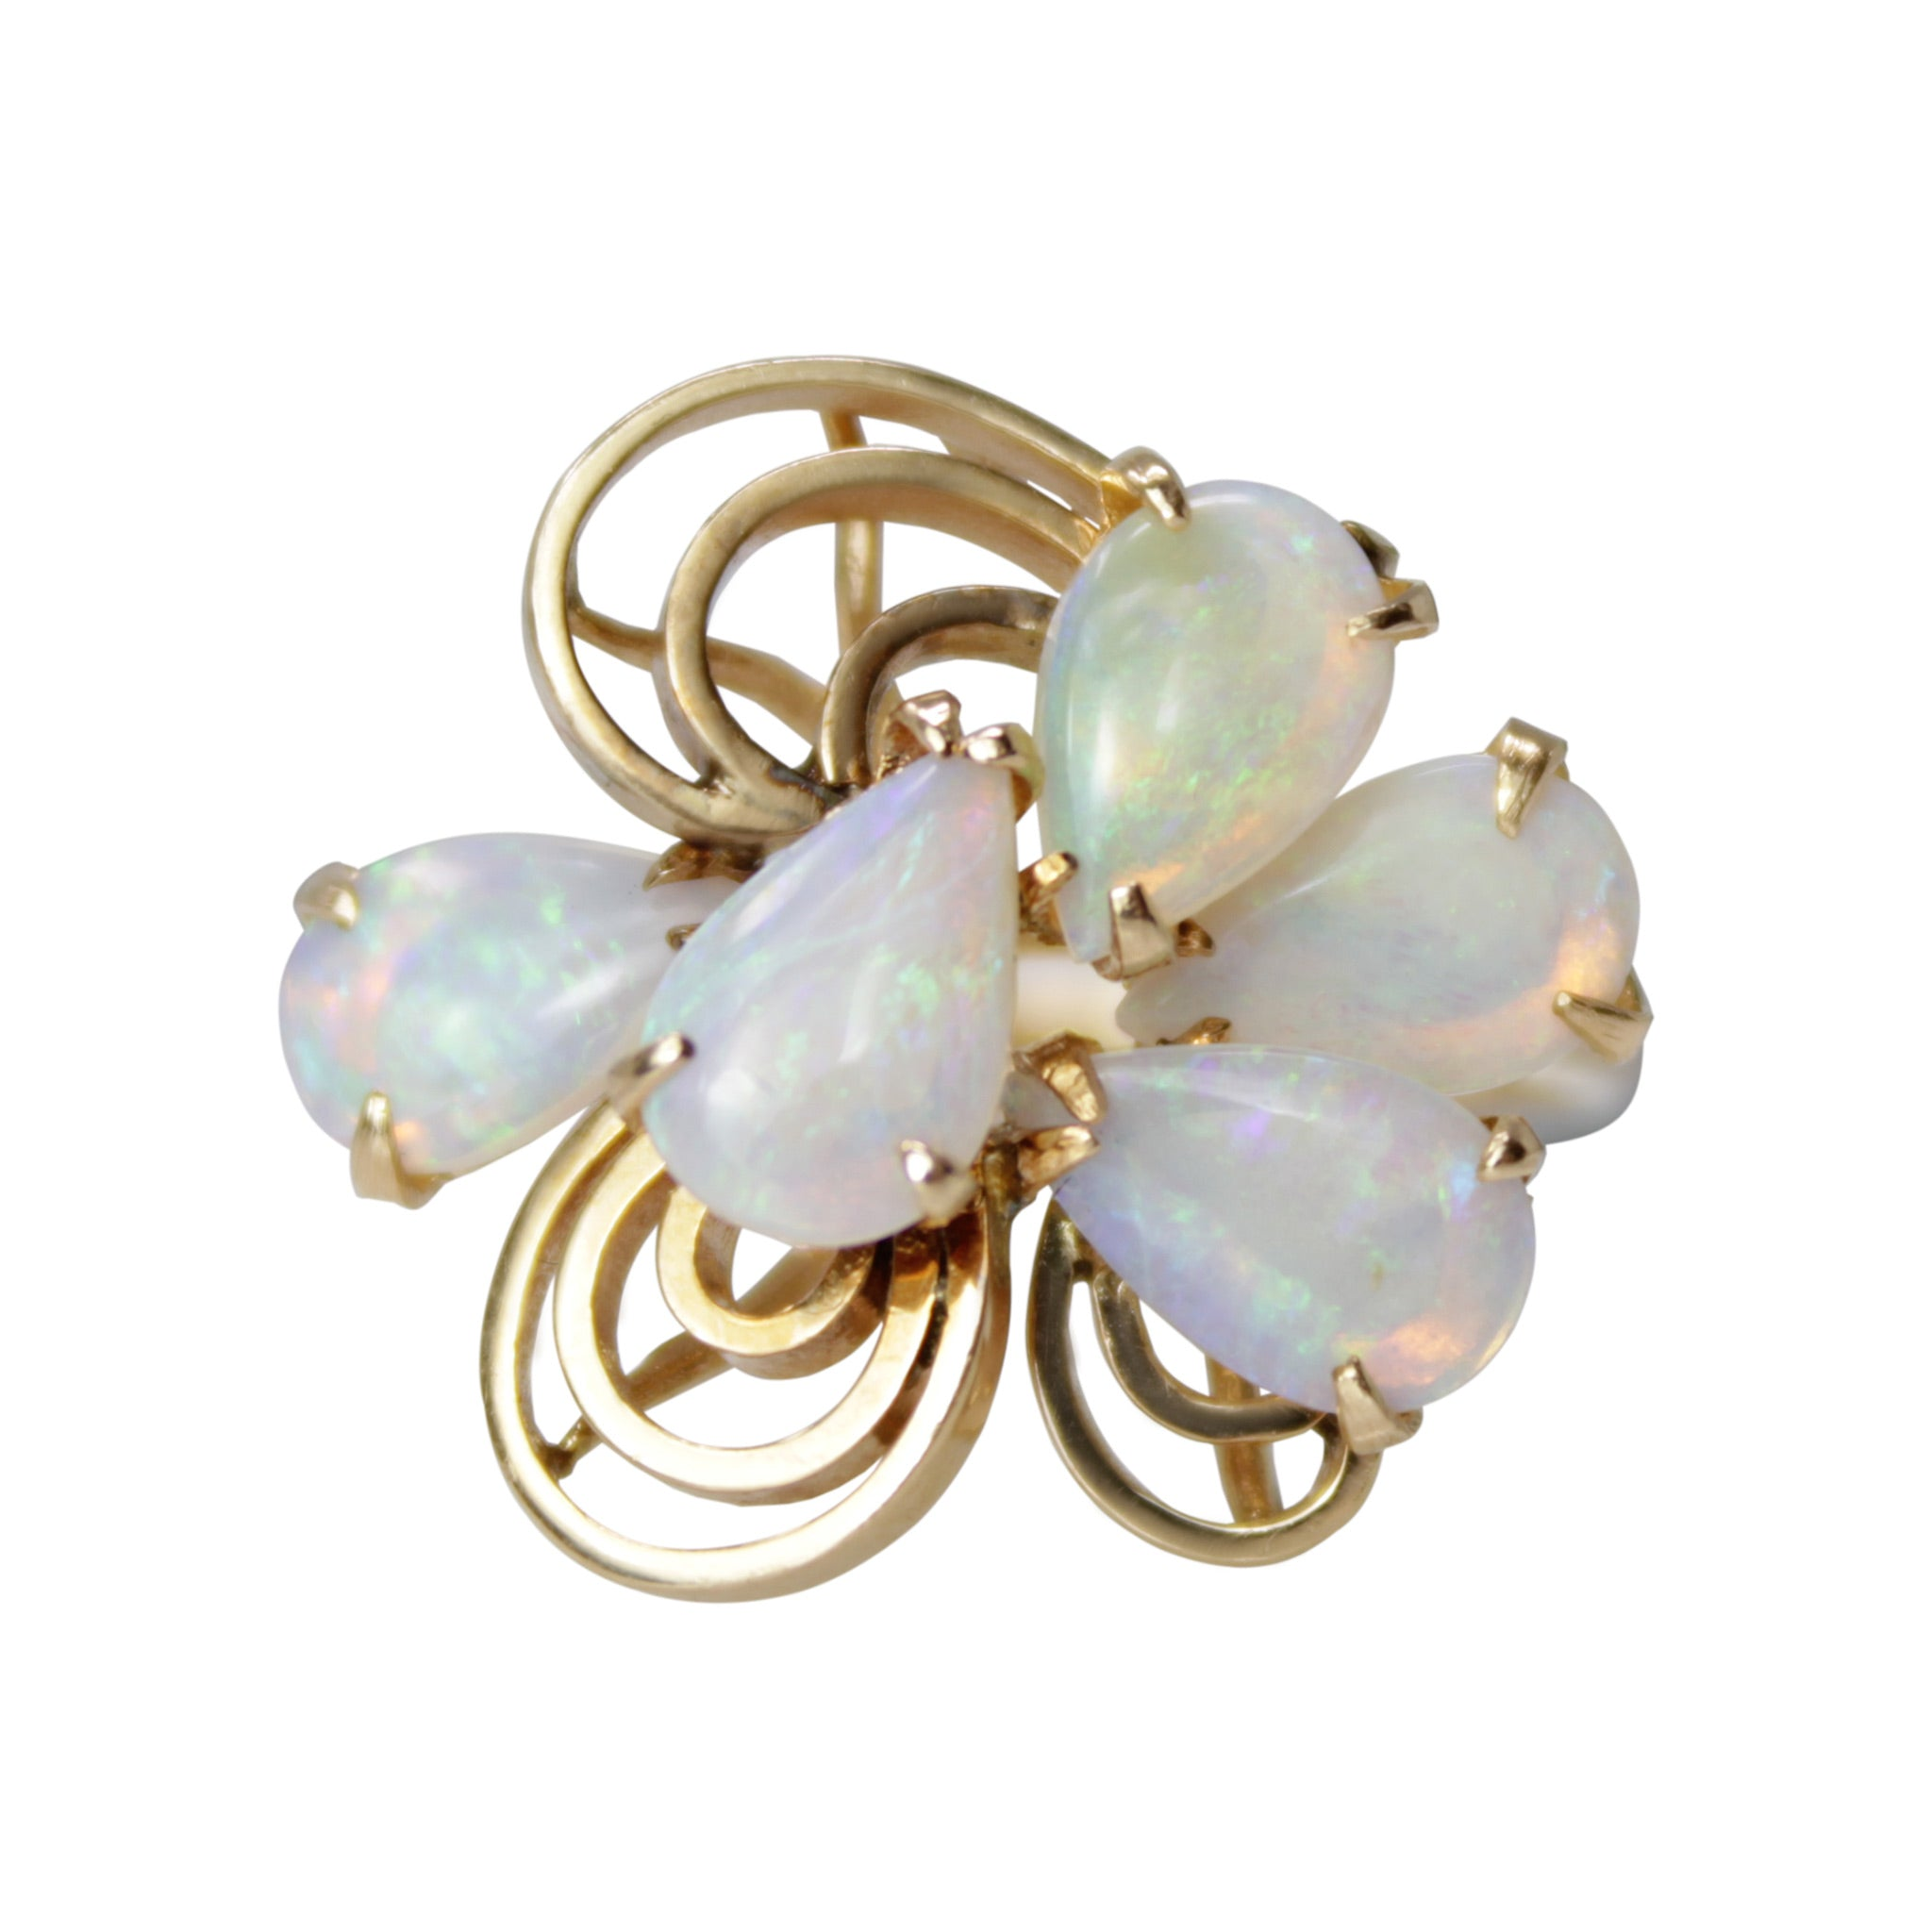 Opal Flower Power - 14k Yellow Gold 5 Pear Opal Ring